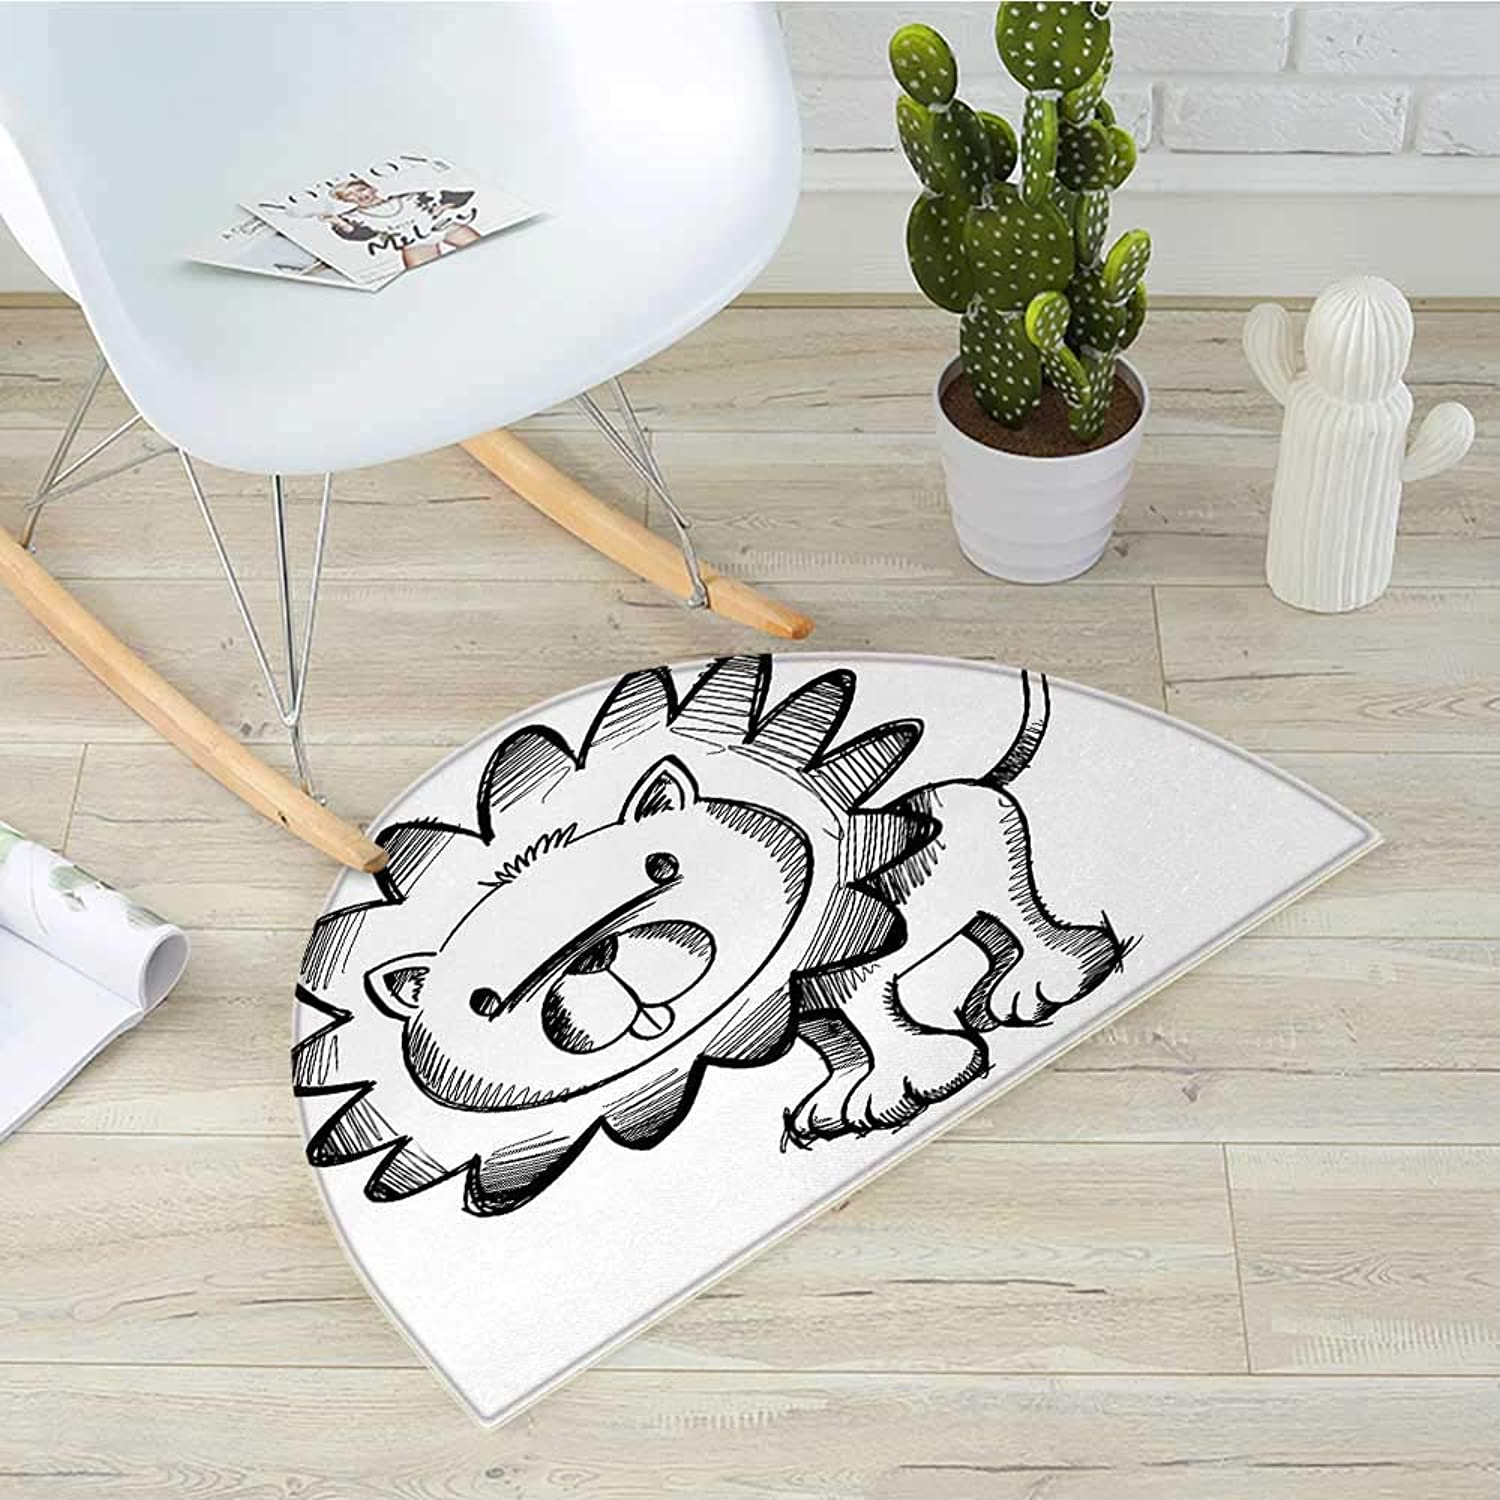 Doodle Semicircular CushionSketchy Baby Lion African Wildlife Character Safari Jungle Savanna Habitat Theme Entry Door Mat H 35.4  xD 53.1  Black White